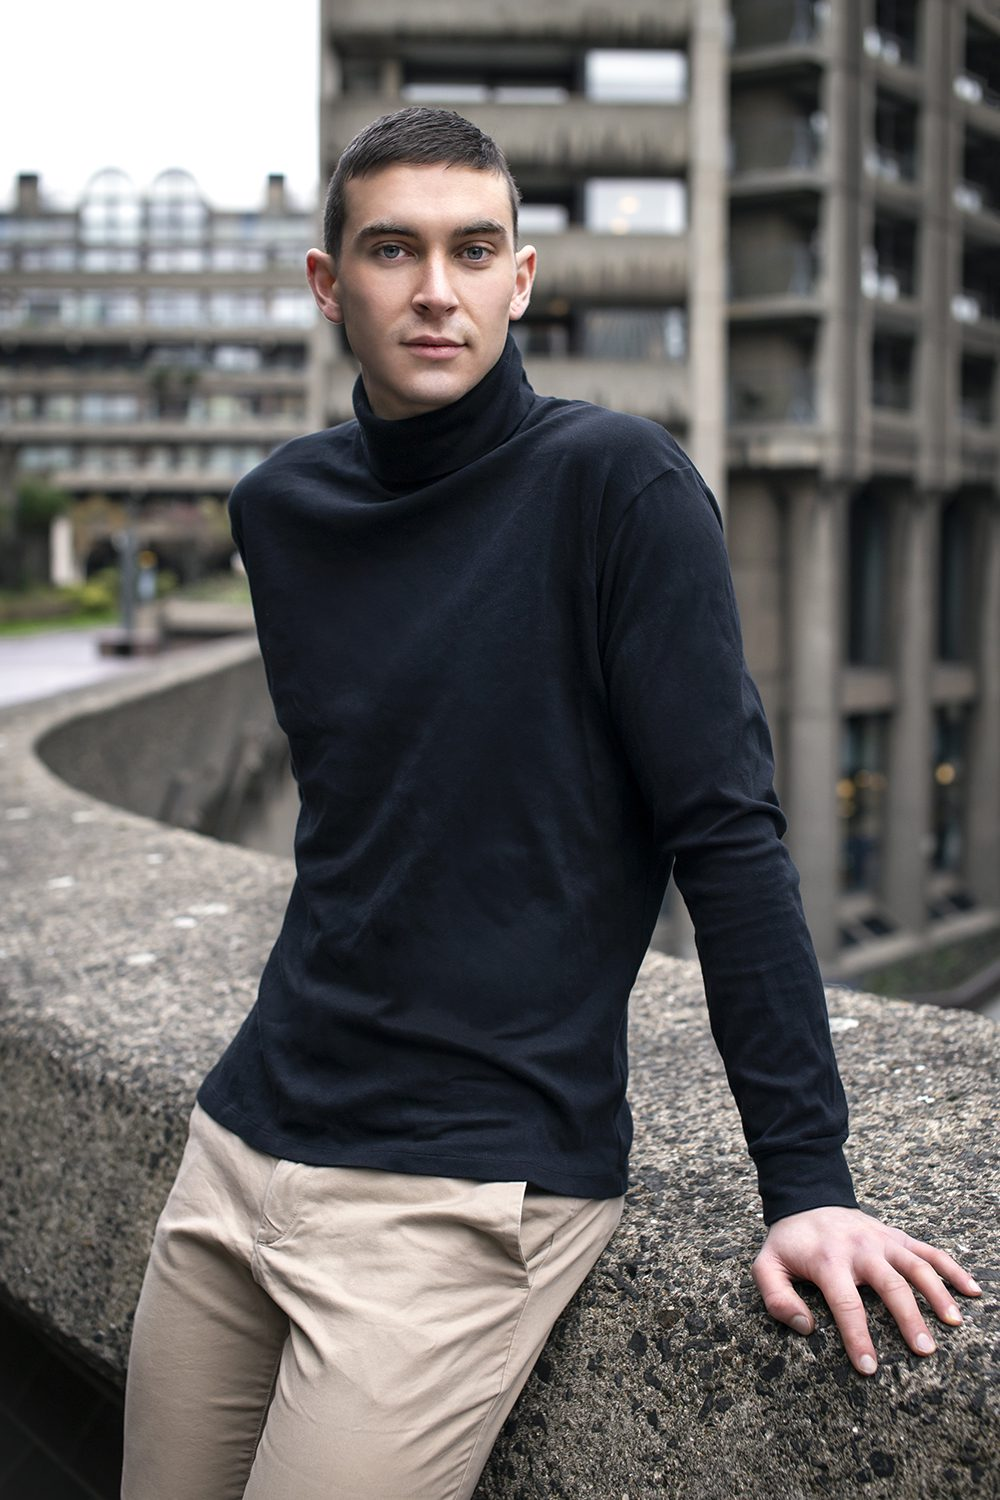 mid-shot of a man leaning on a stone wall outdoors in a navy turtleneck